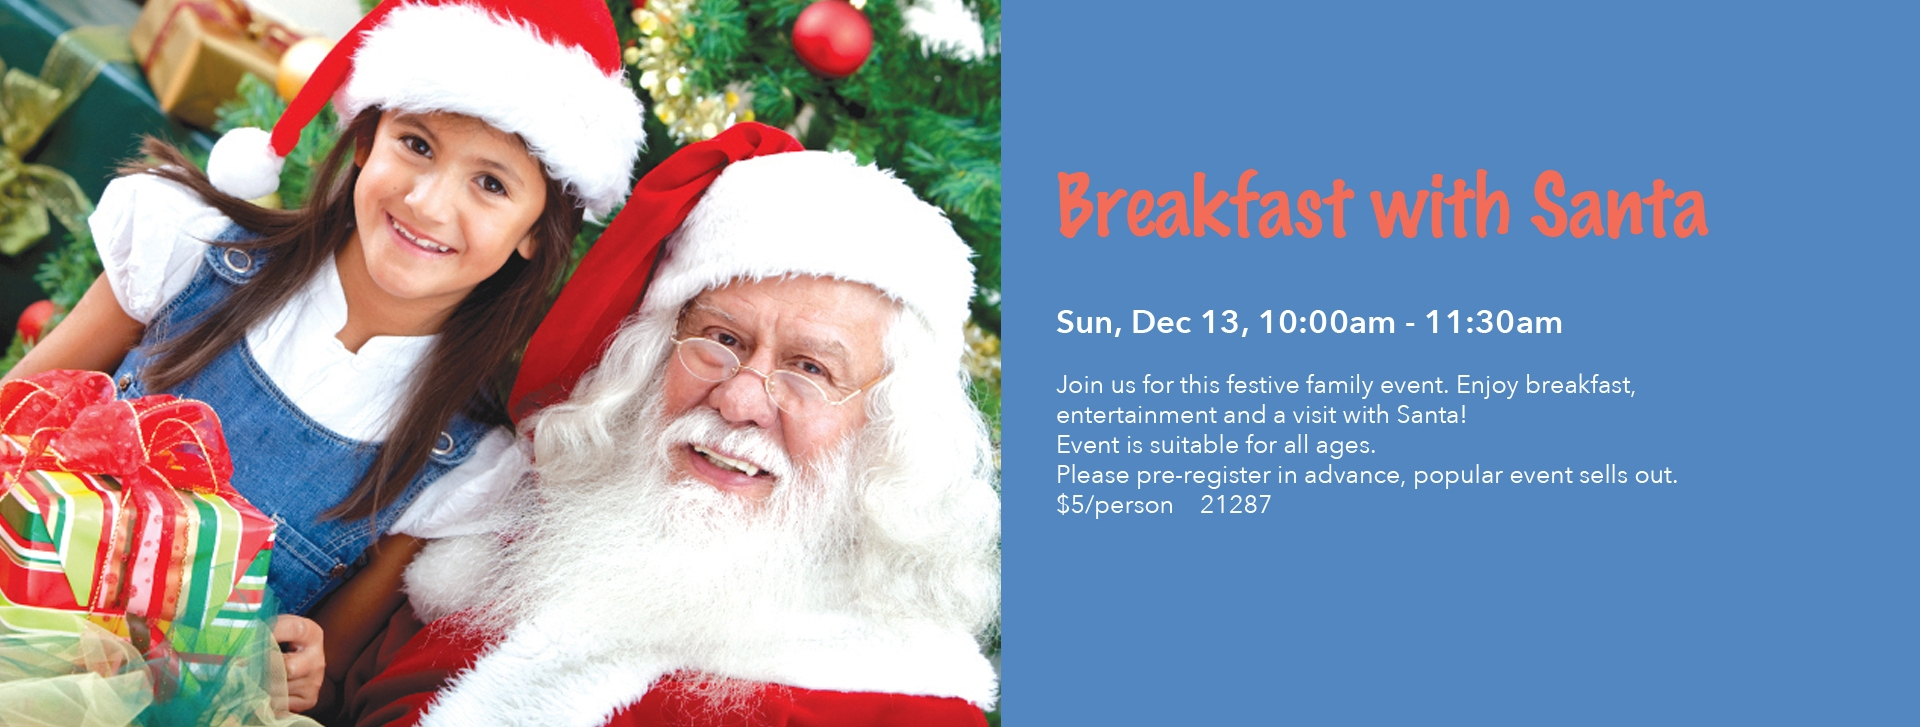 NP_slide_breakfastwithsanta